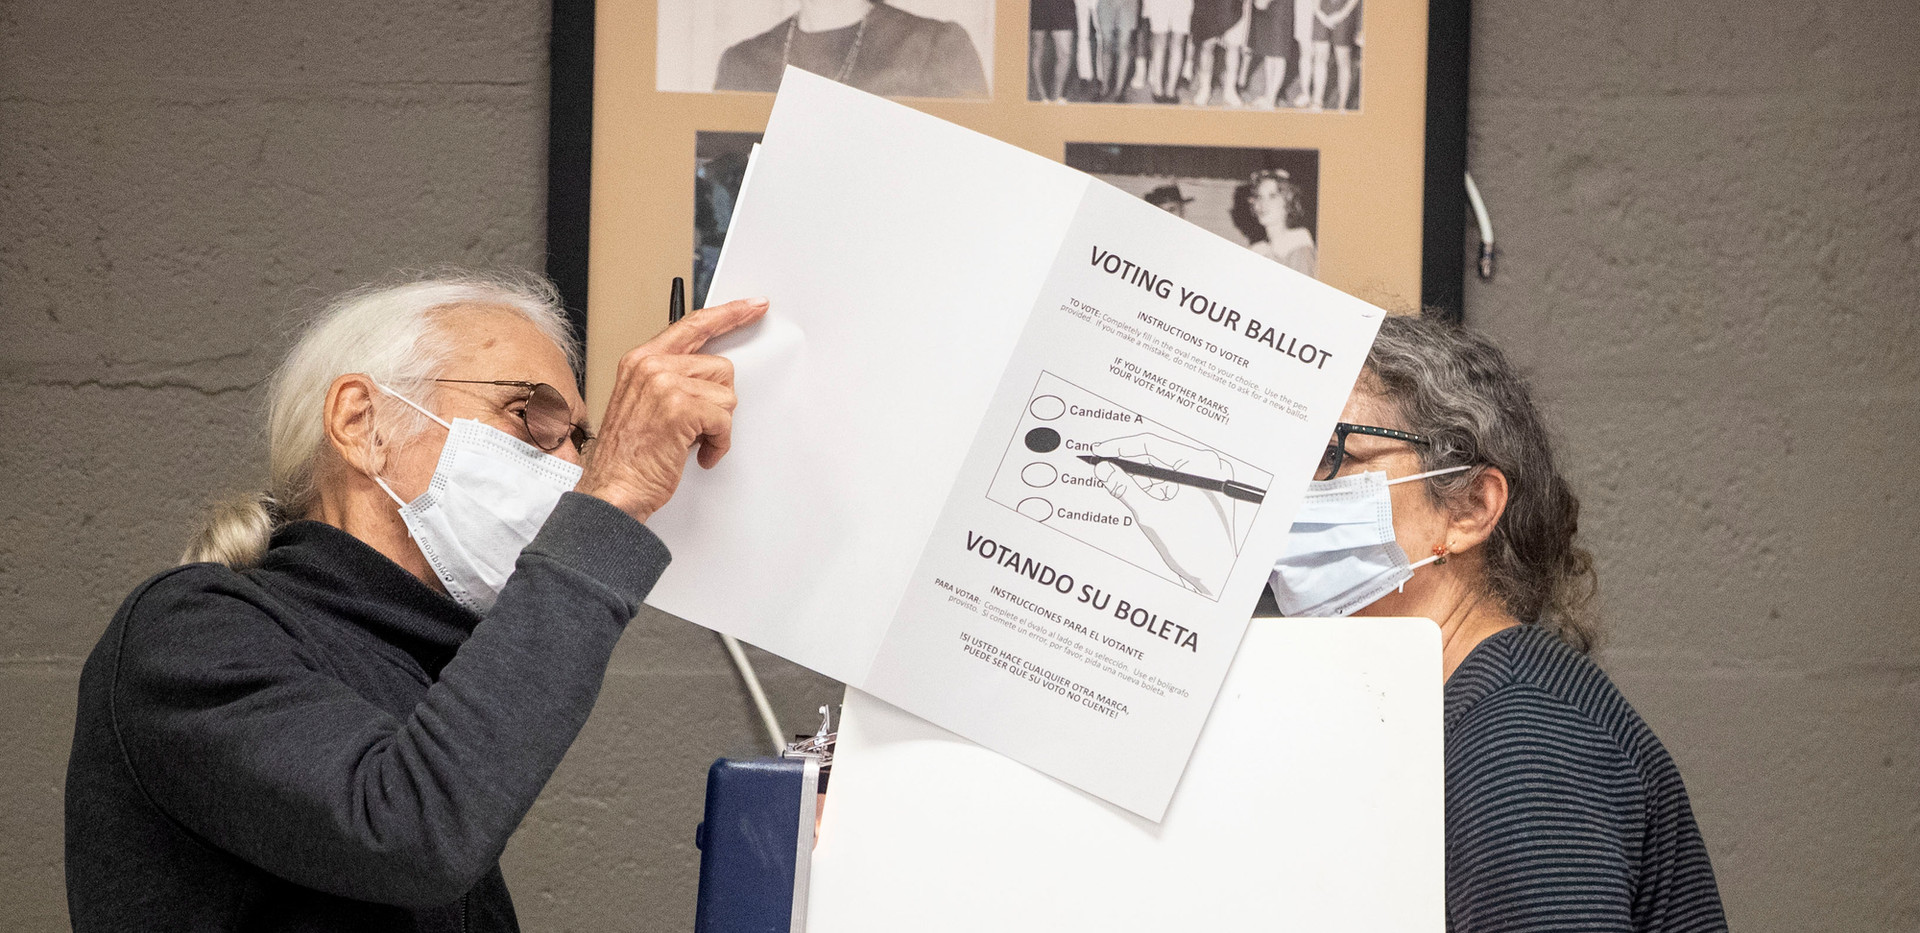 Jim Roche, left, and Alexa Kleinbard wear masks while voting in Tallahassee during the Florida primary election, Tuesday, March 17, 2020. Both are over 65-years-old and felt it was important to exercise their right to vote while also being cautious of the coronavirus.